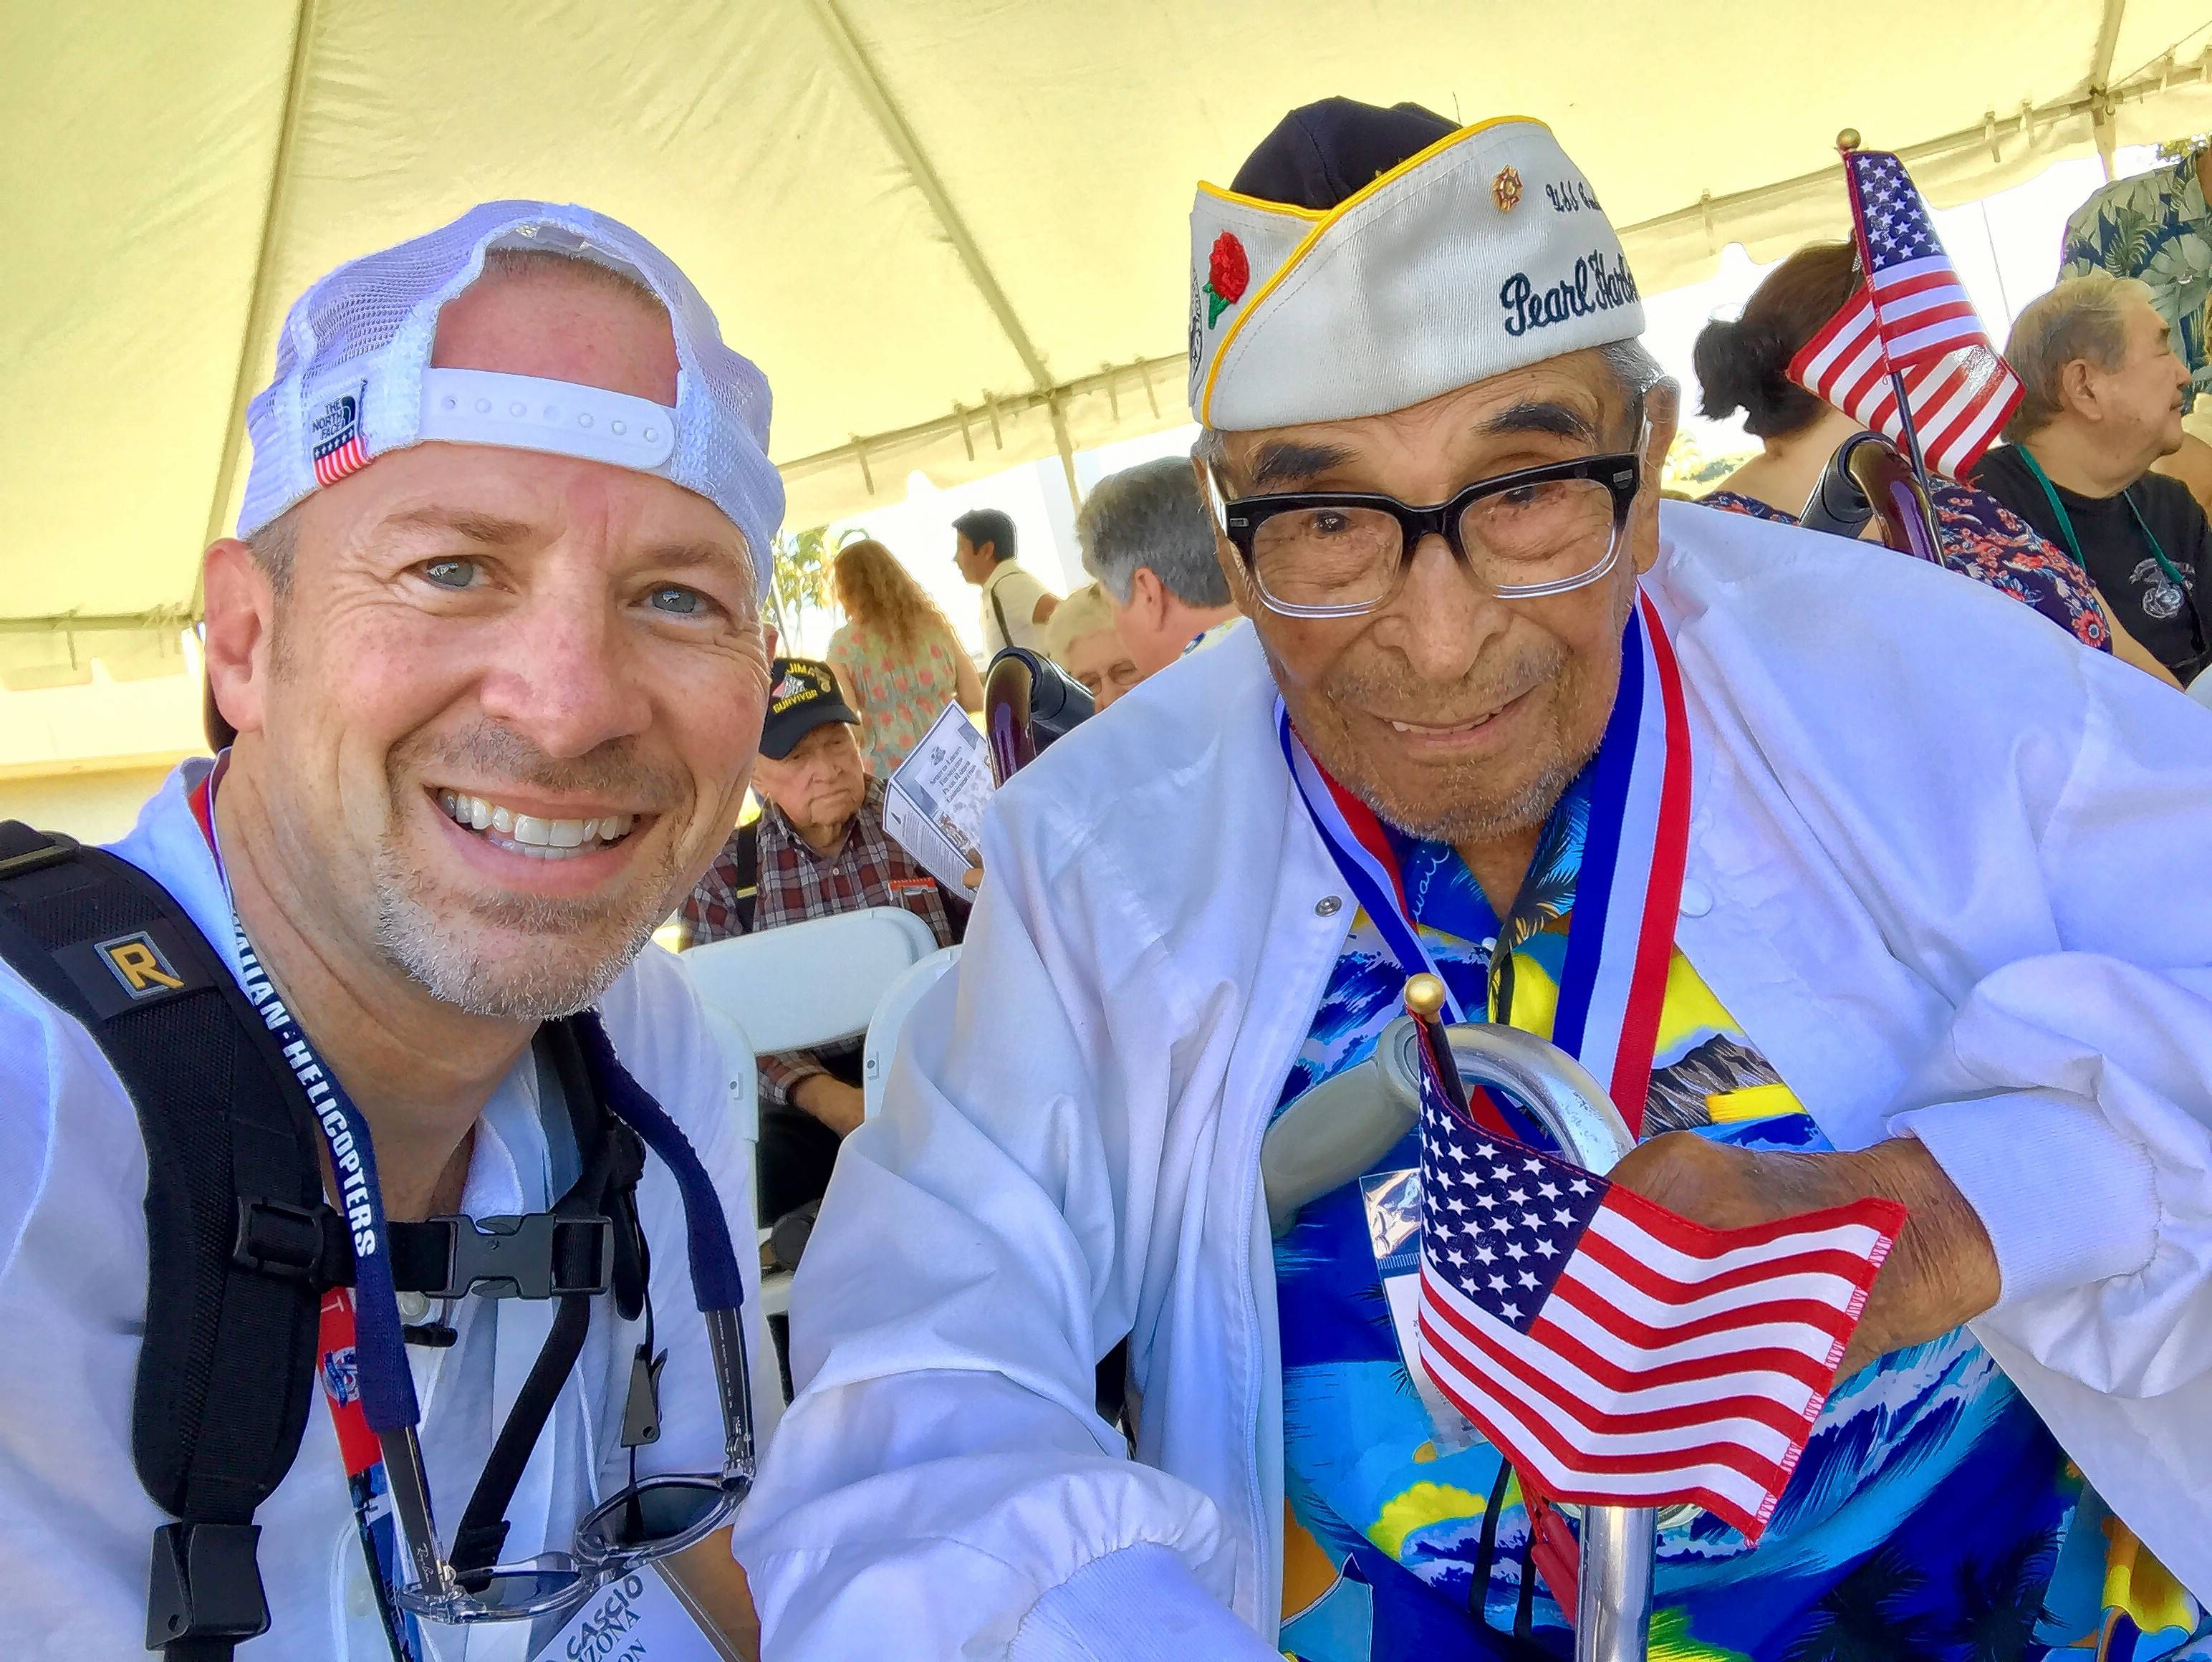 As the only photographer invited to exclusive events this week at Pearl Harbor, Paolo Cascio of Schaumburg meets Ray Chavez, who, at age 104, is the oldest survivor of the attack on Pearl Harbor on Dec. 7, 1941. Chavez was on the base at the time of the attack.